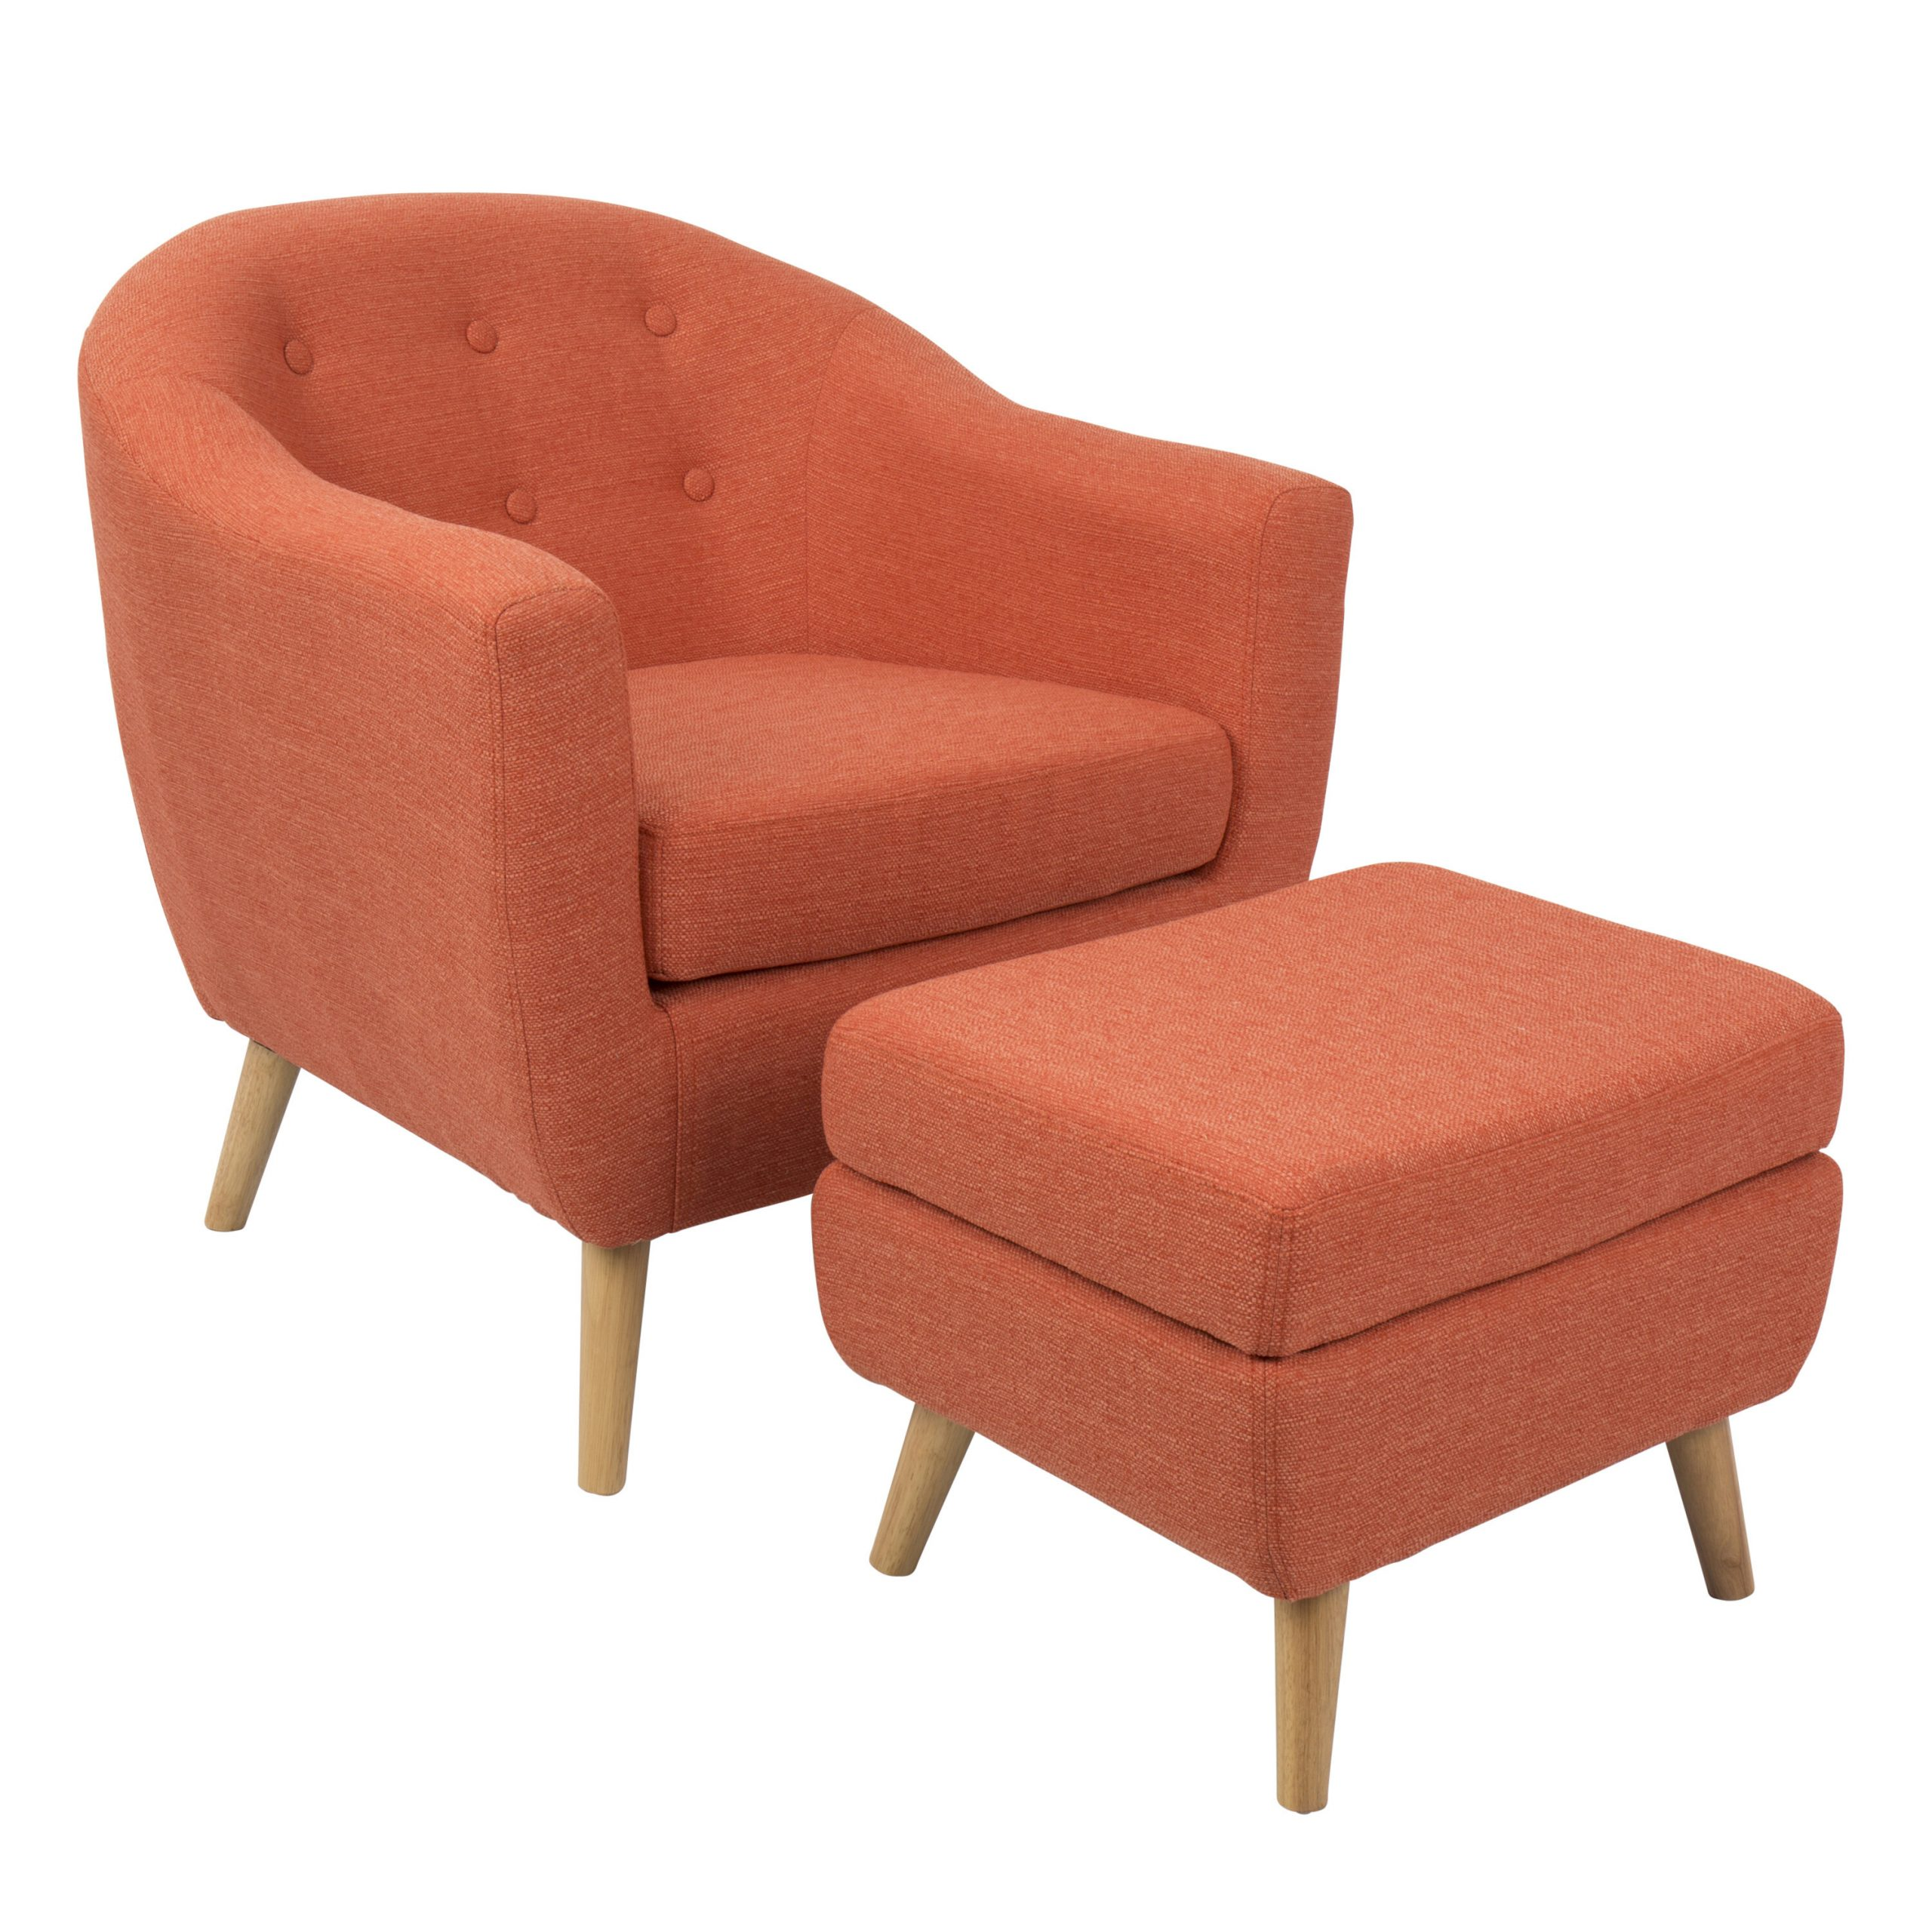 Orange & White Accent Chairs You'Ll Love In 2021   Wayfair Within Artemi Barrel Chair And Ottoman Sets (View 9 of 15)